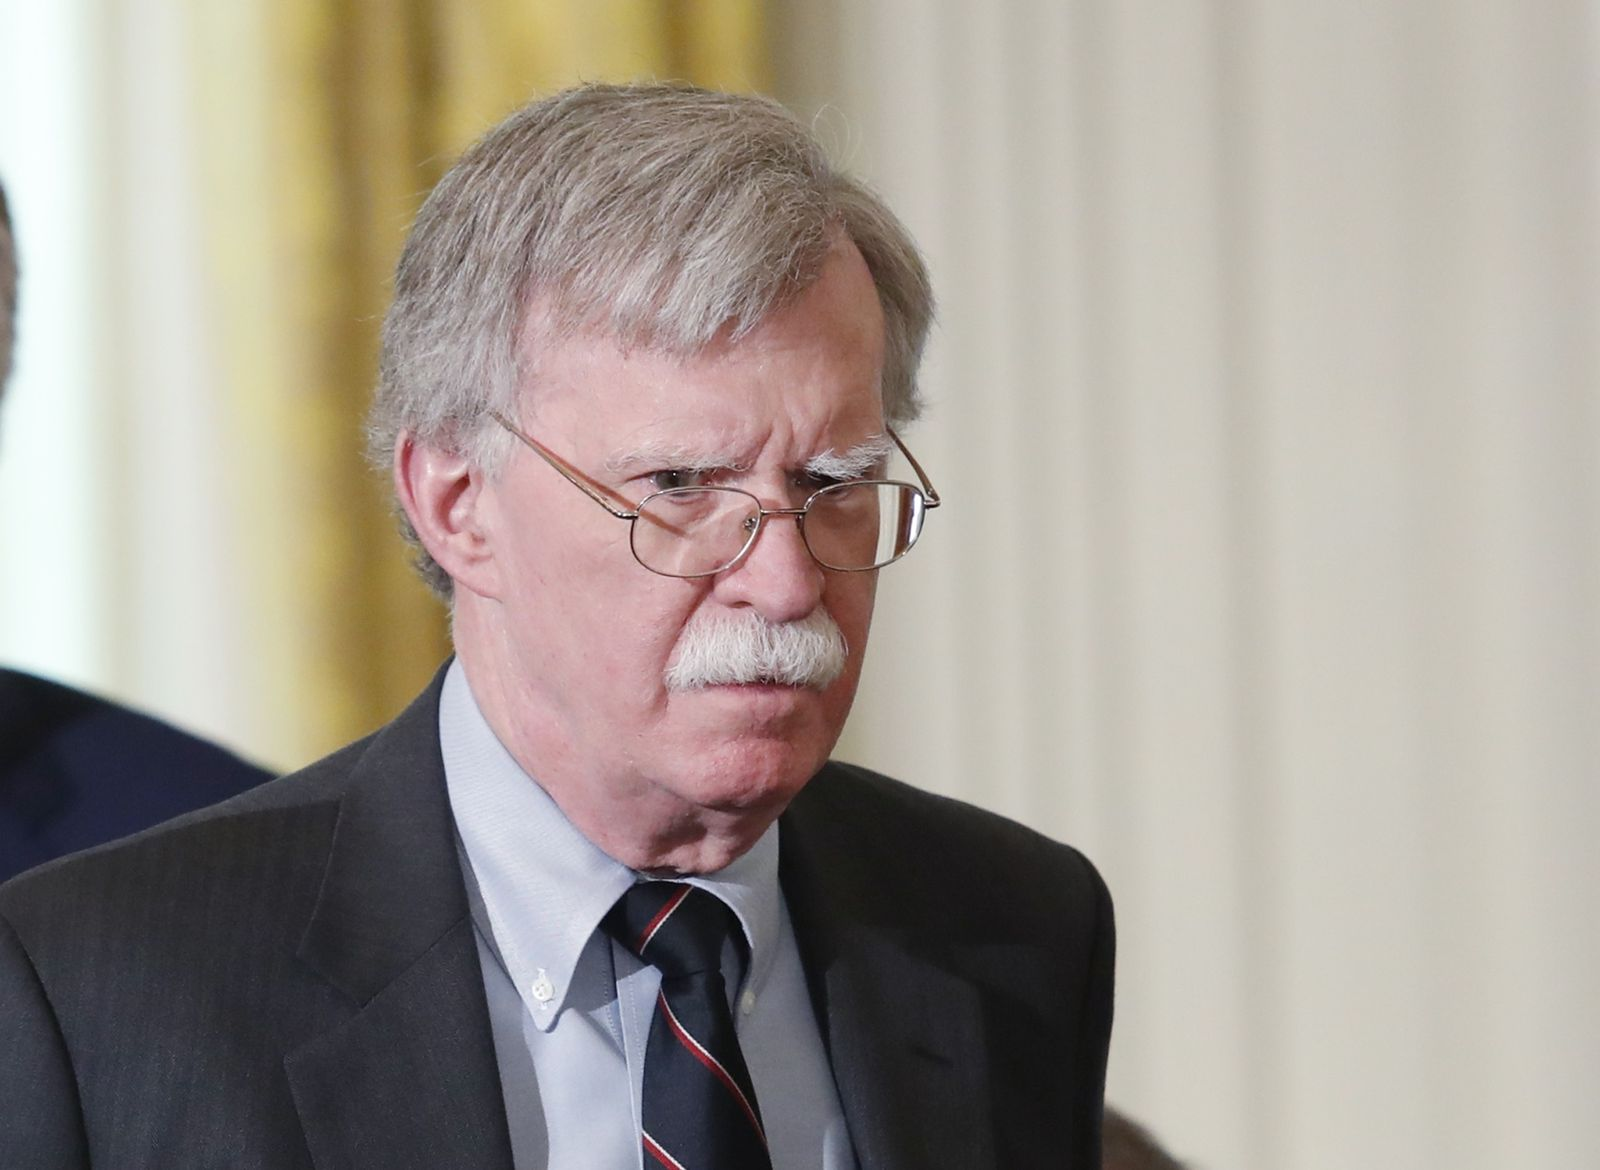 Bolton arrives for Trump-Merkel joint news conference at the White House in Washington